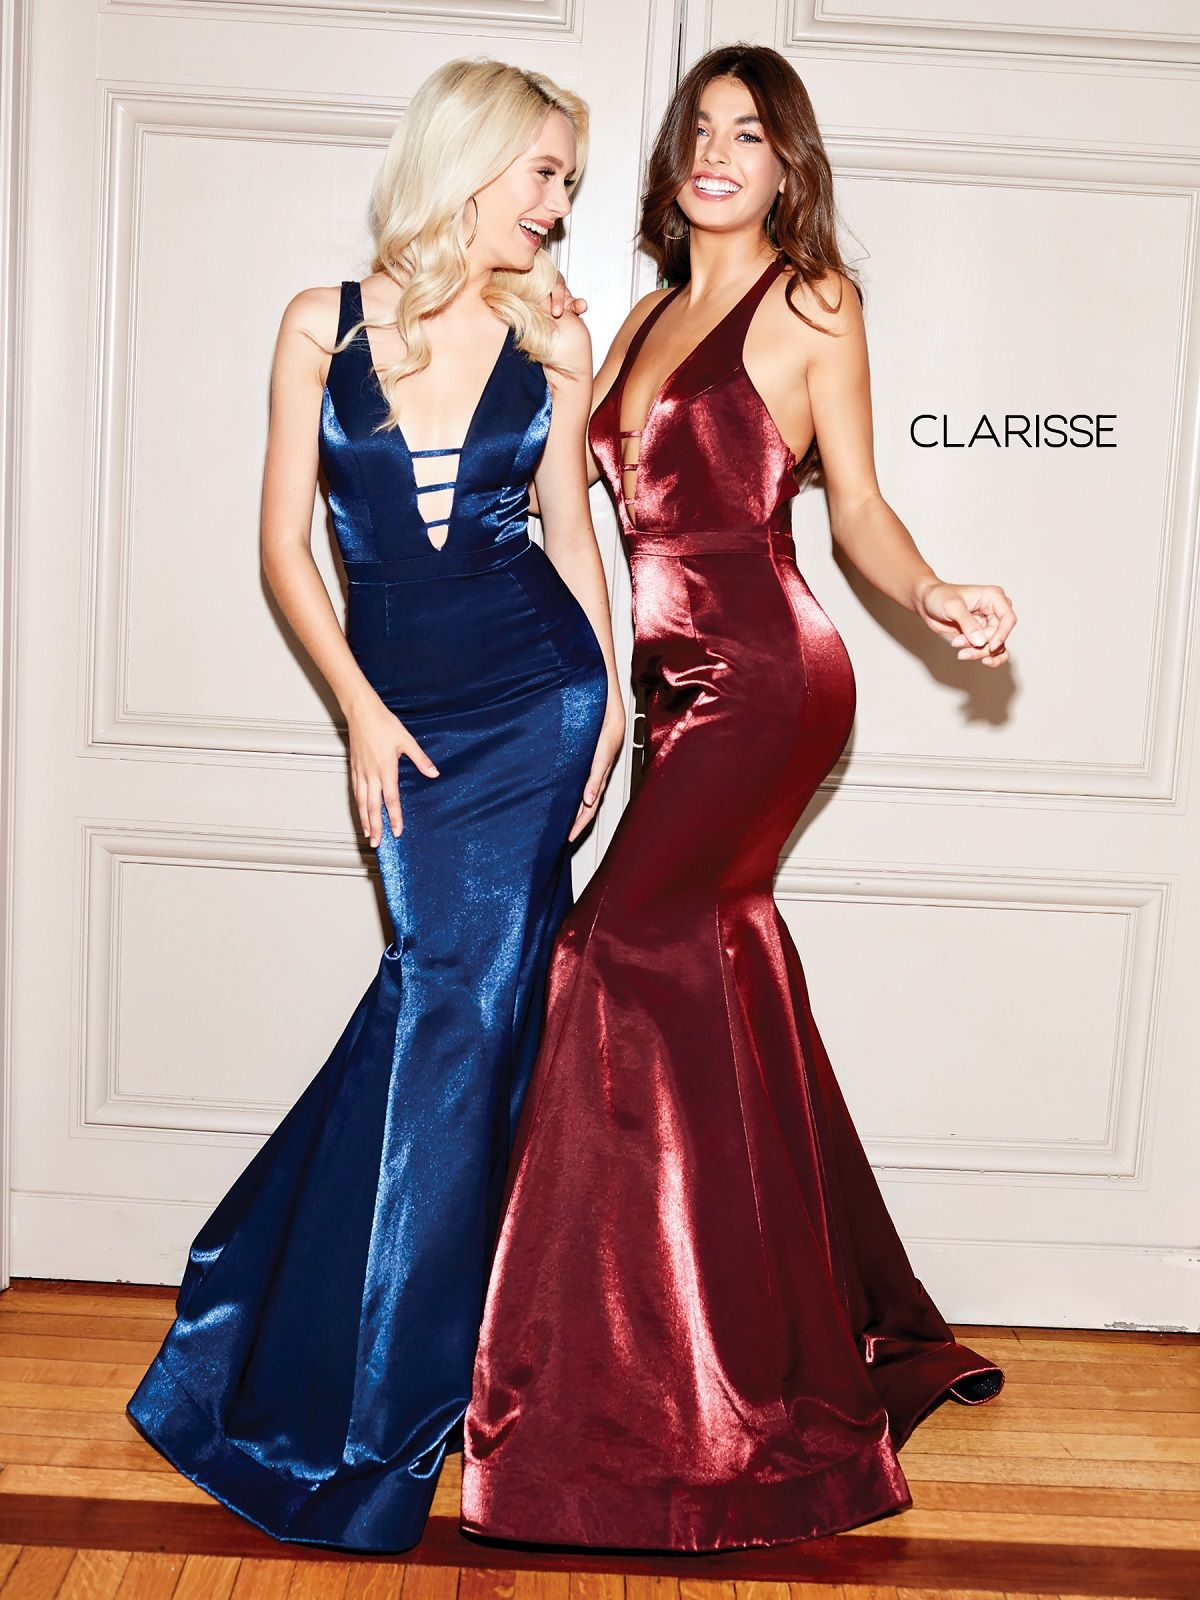 a617cecd3b Clarisse Dress 3765 Shimmer Mermaid Prom Dress | 4 Colors | Prom 2019